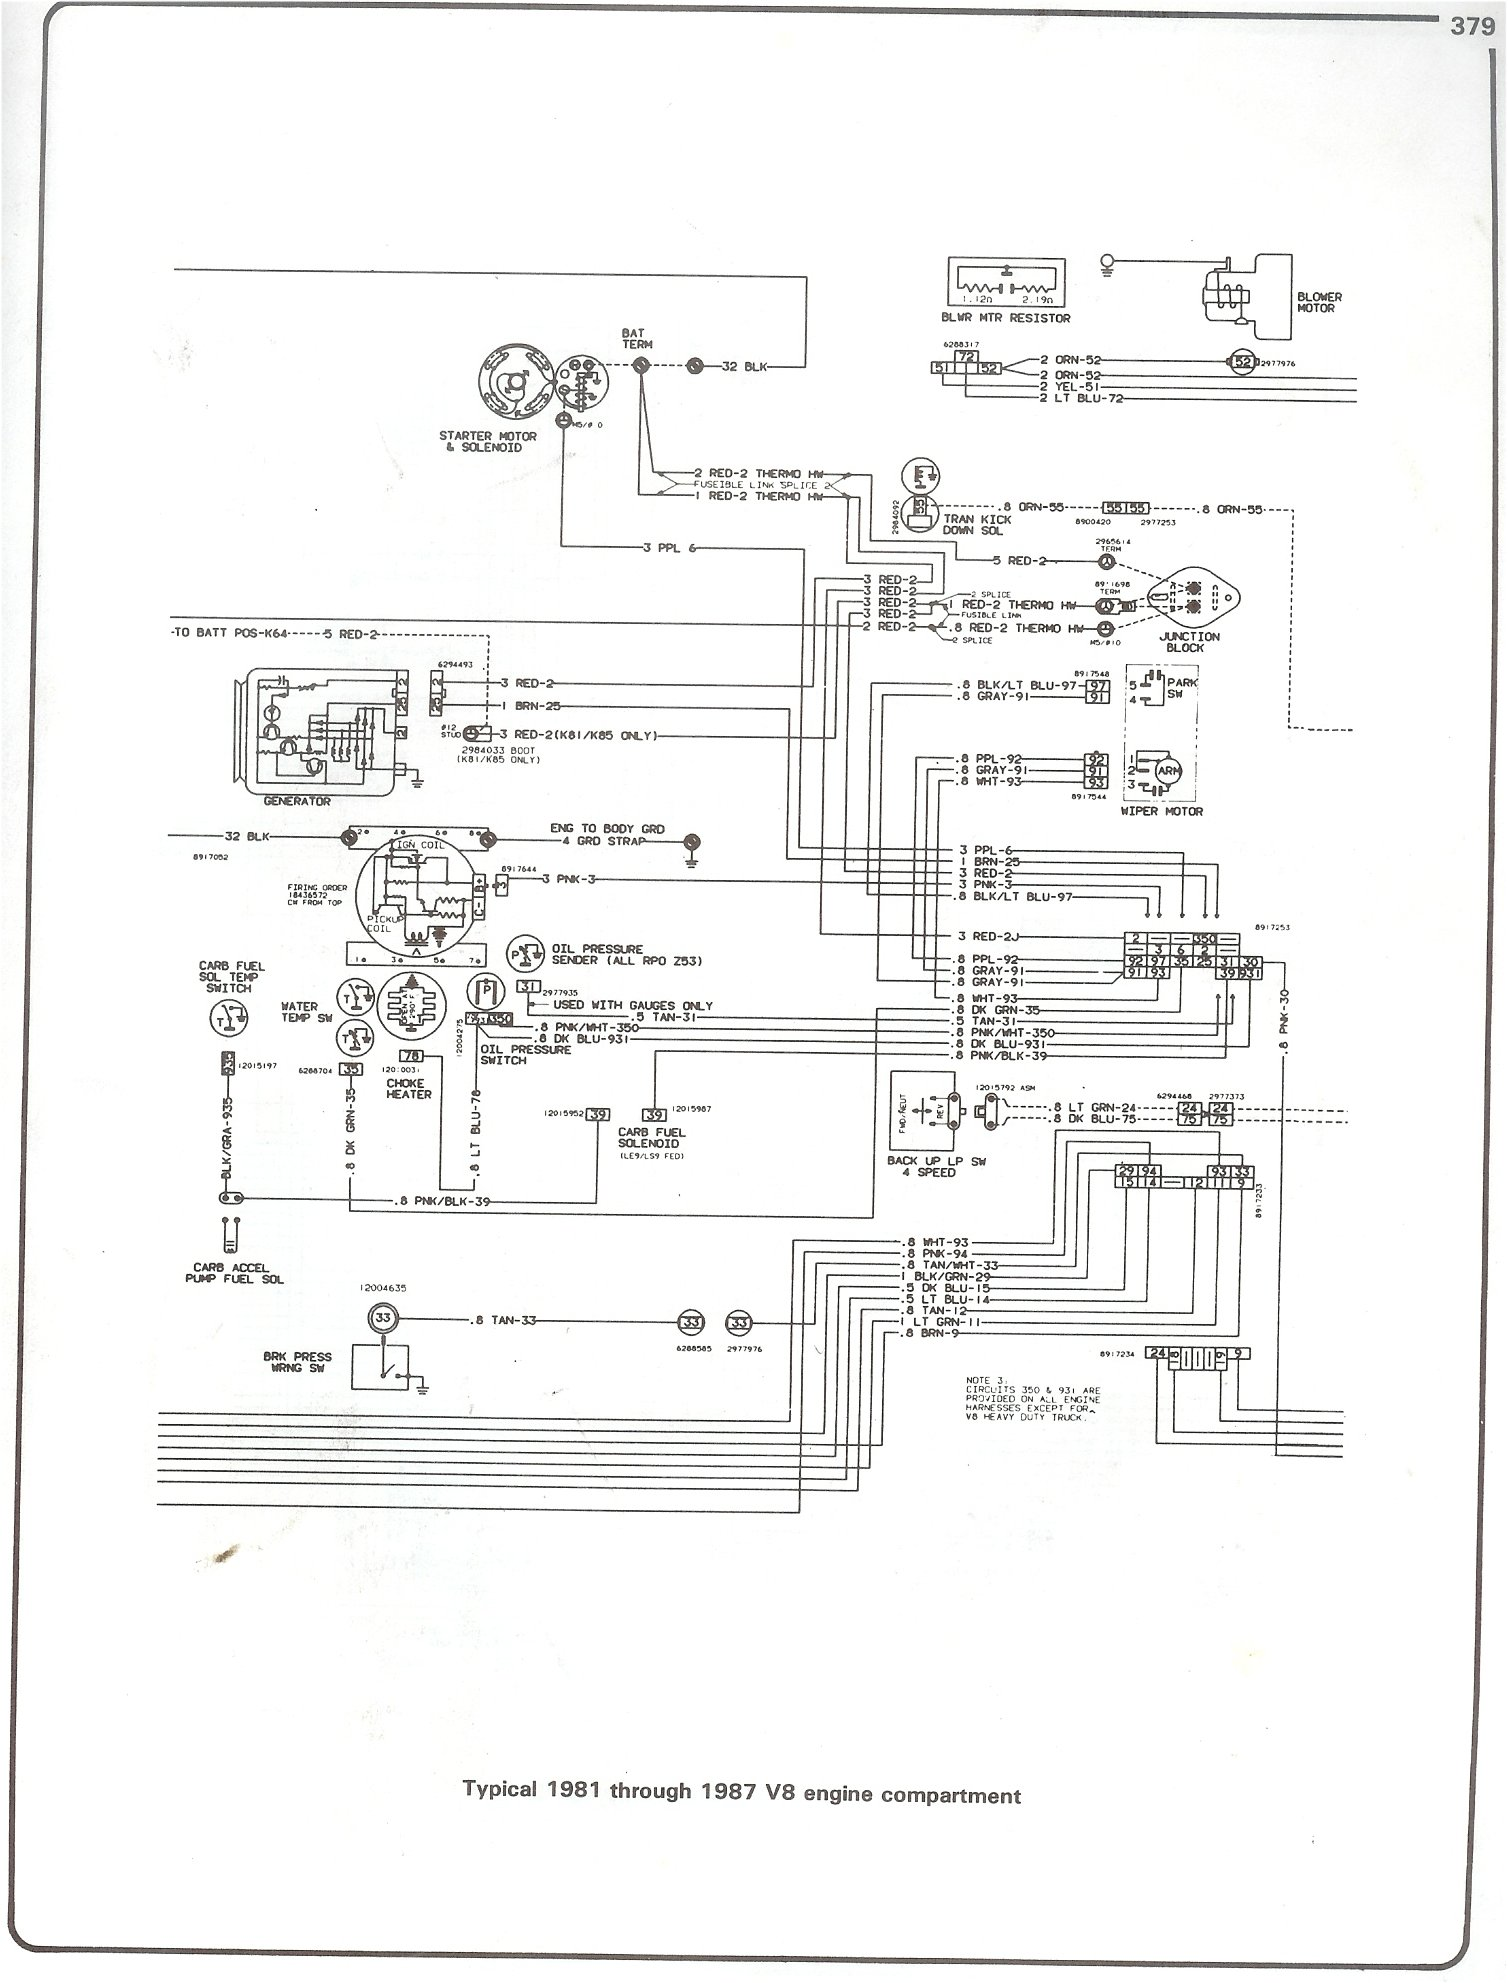 2007 Chevrolet Silverado Fuse Diagram Simple Guide About Wiring Stereo Harness Complete 73 87 Diagrams